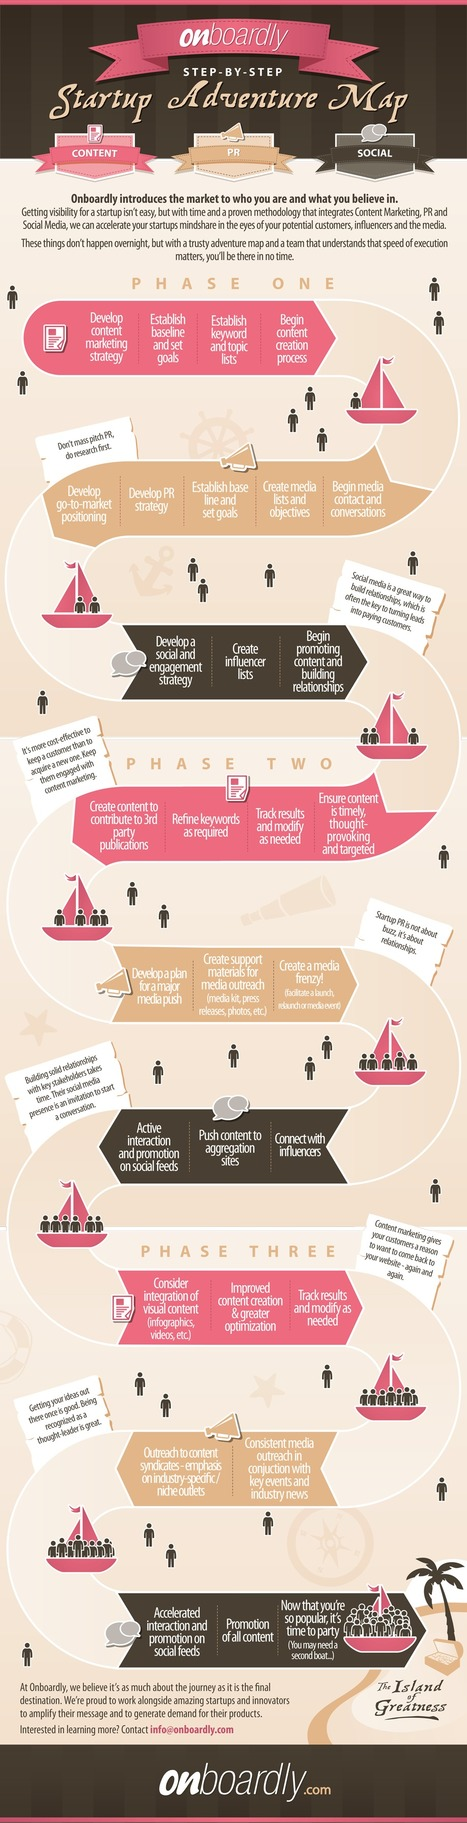 Steps On How to Acquire Customers For Your Startup [INFOGRAPHIC] | | Online tips & social media nieuws | Scoop.it